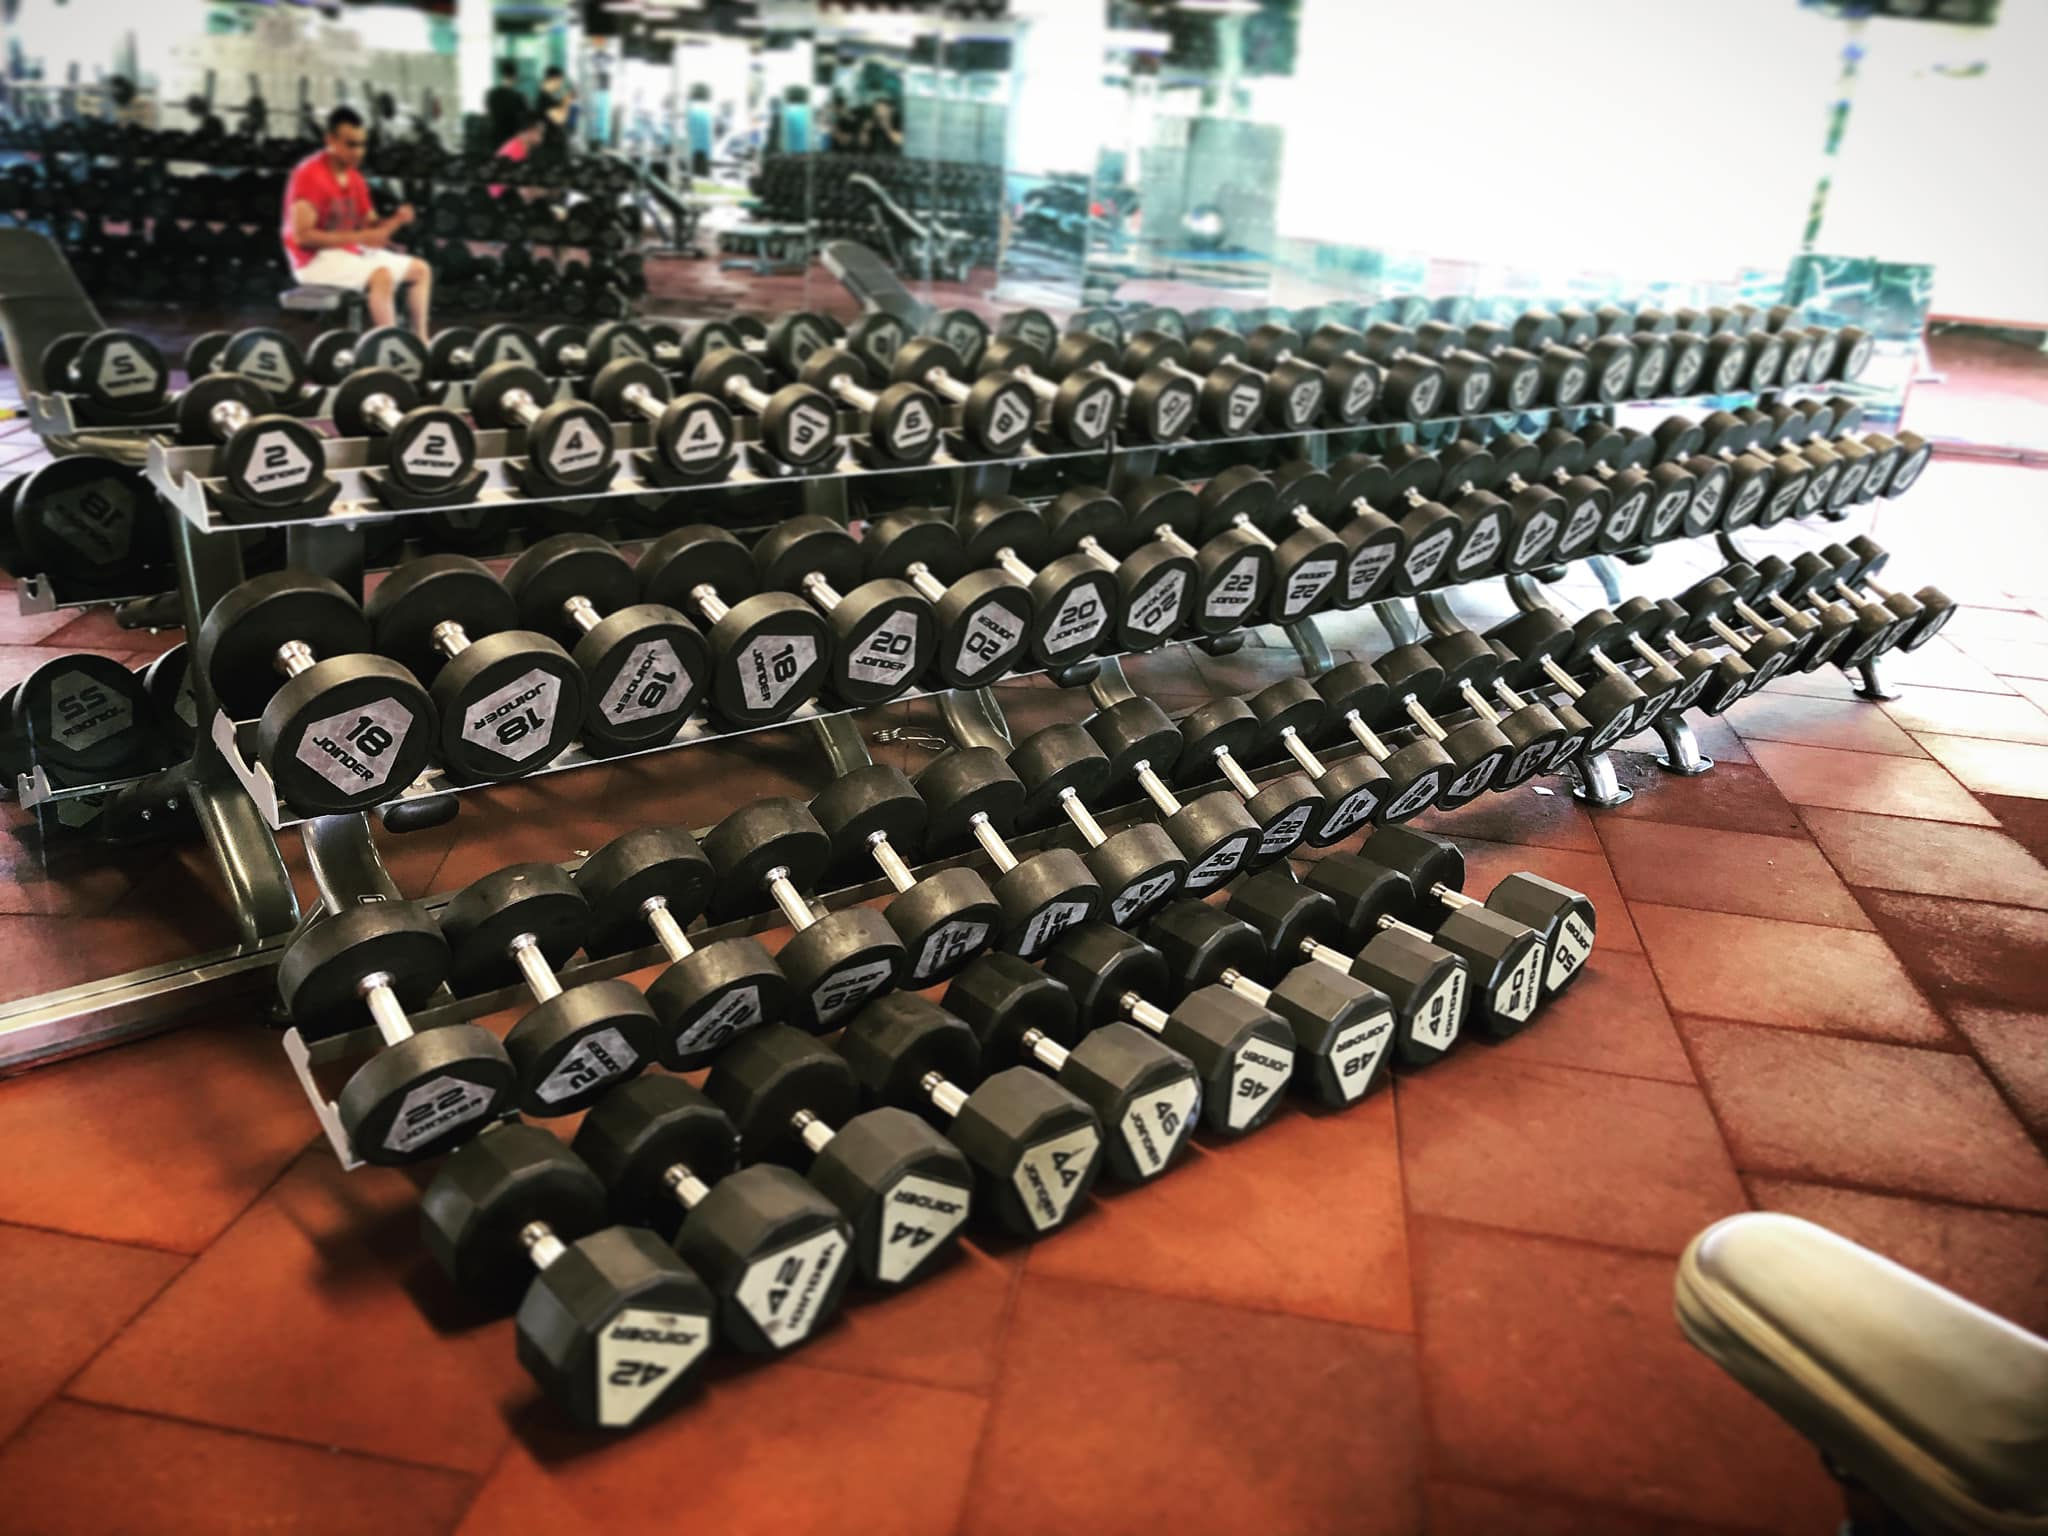 tạ tay tập gym joinder